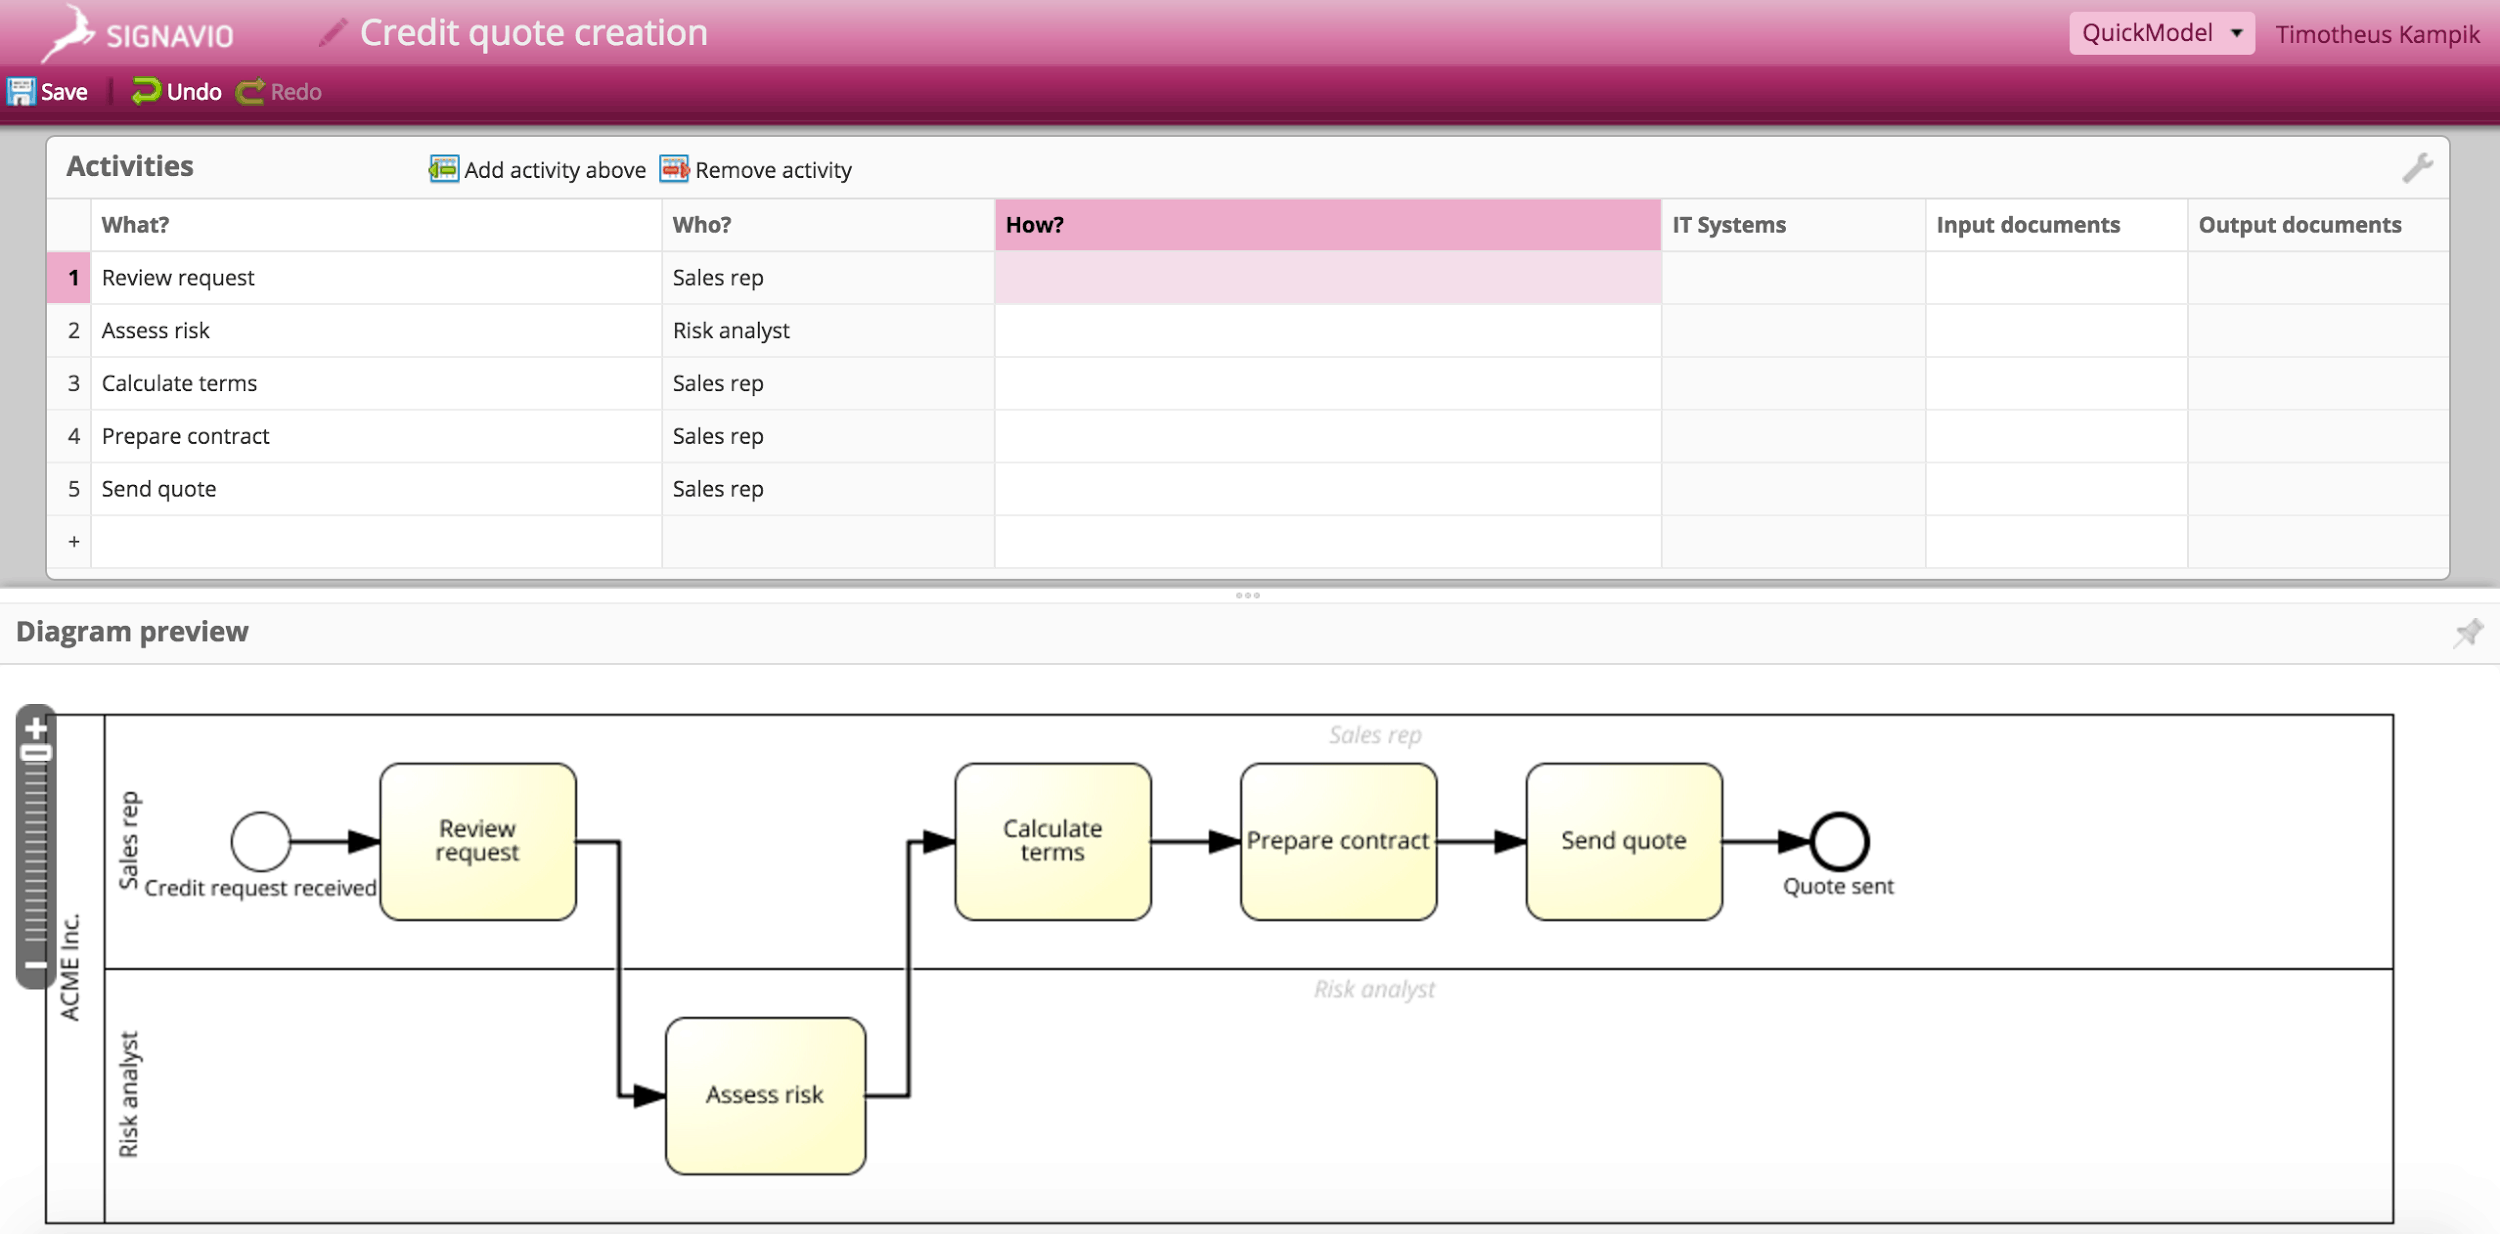 Process Modeling in Quick Model